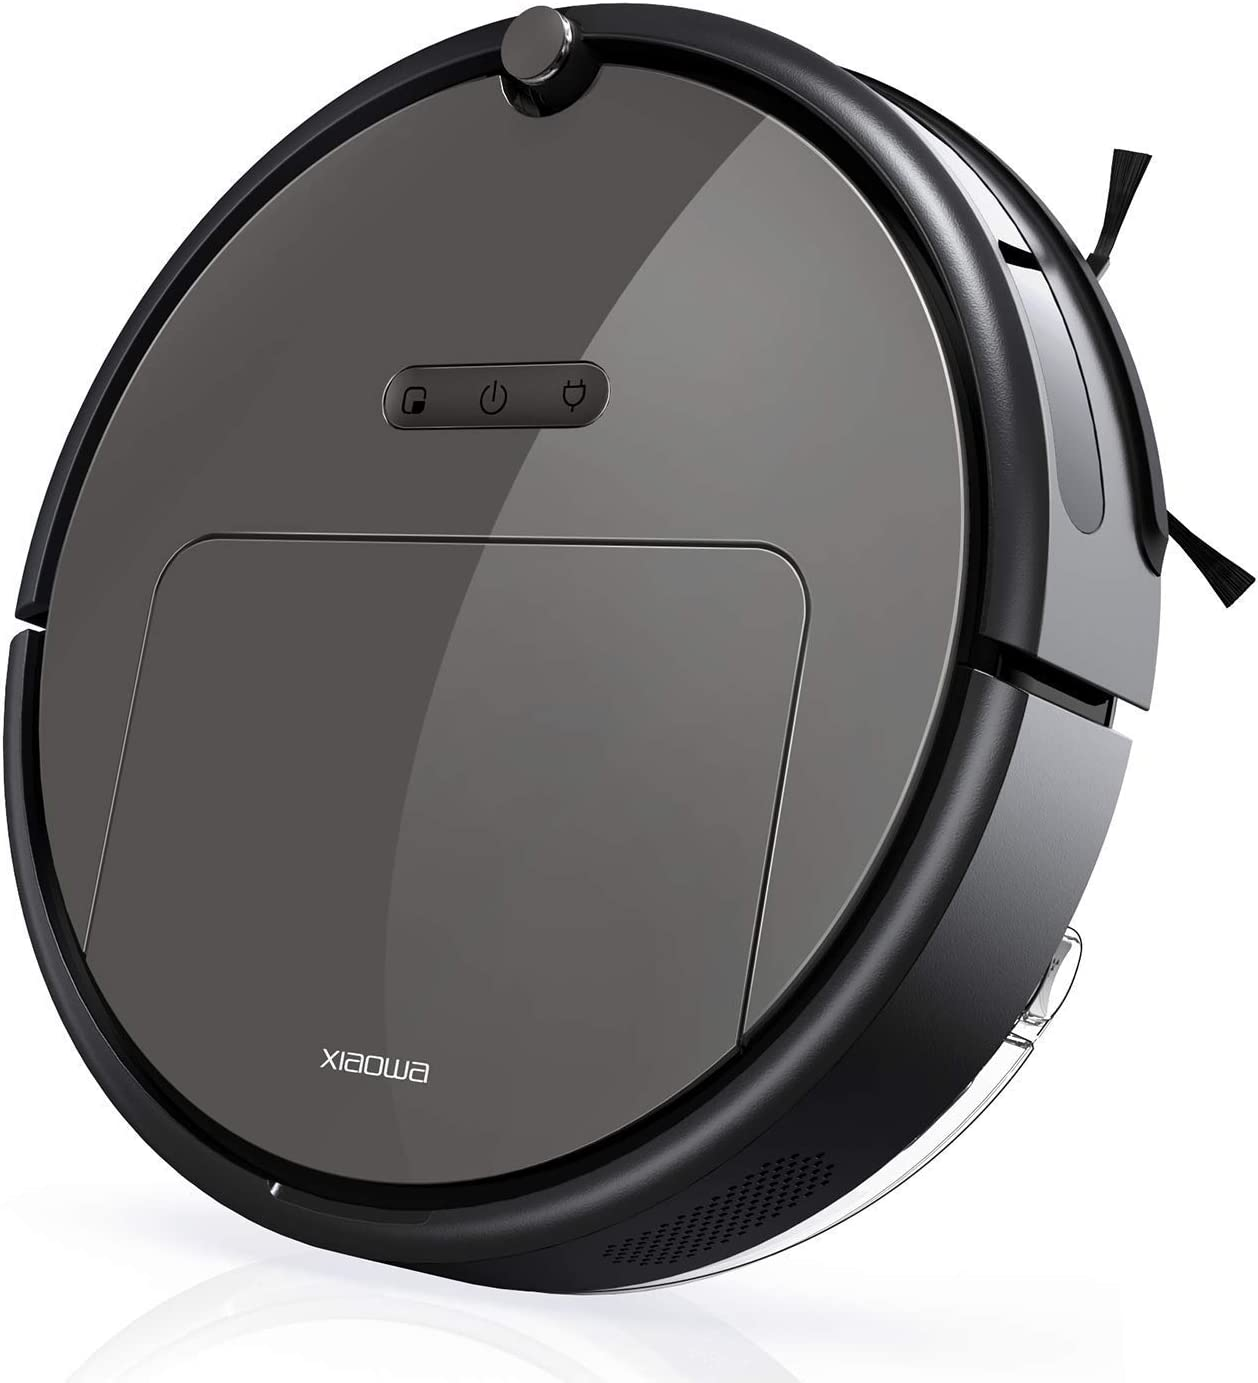 Roborock E35 Robot Vacuum and Mop: 2000Pa Strong Suction, App Control, and Scheduling, Route Planning, Handles Hard Floors and Carpets Ideal for Homes with Pets (Renewed)